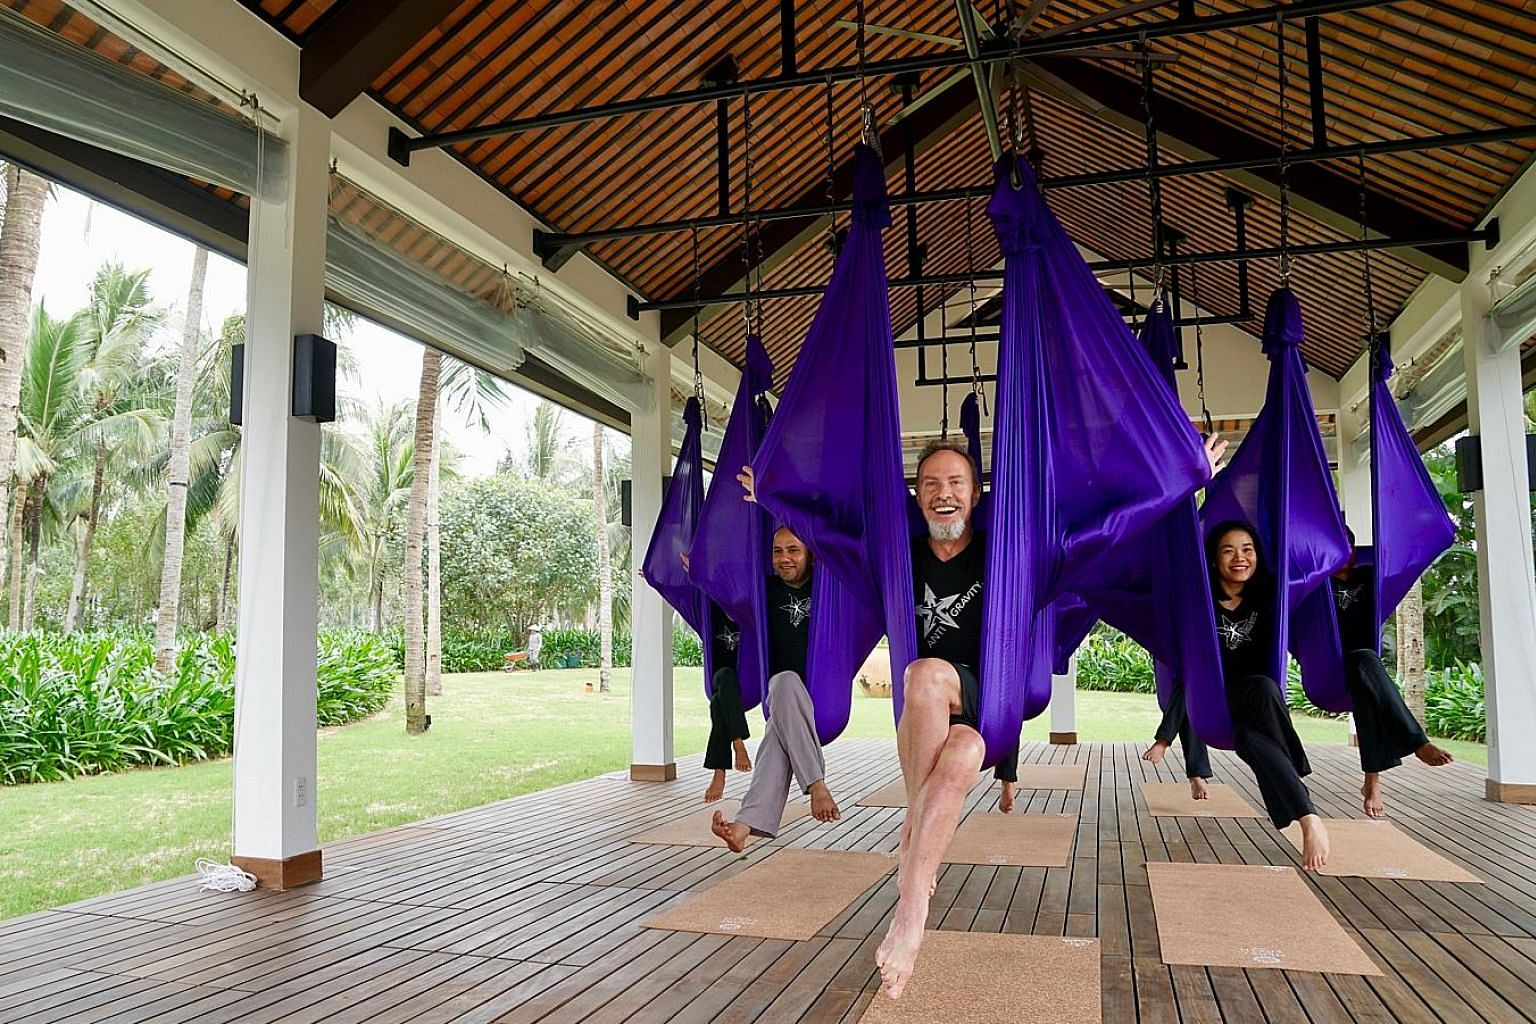 Four Seasons Resort The Nam Hai offers anti-gravity yoga sessions.